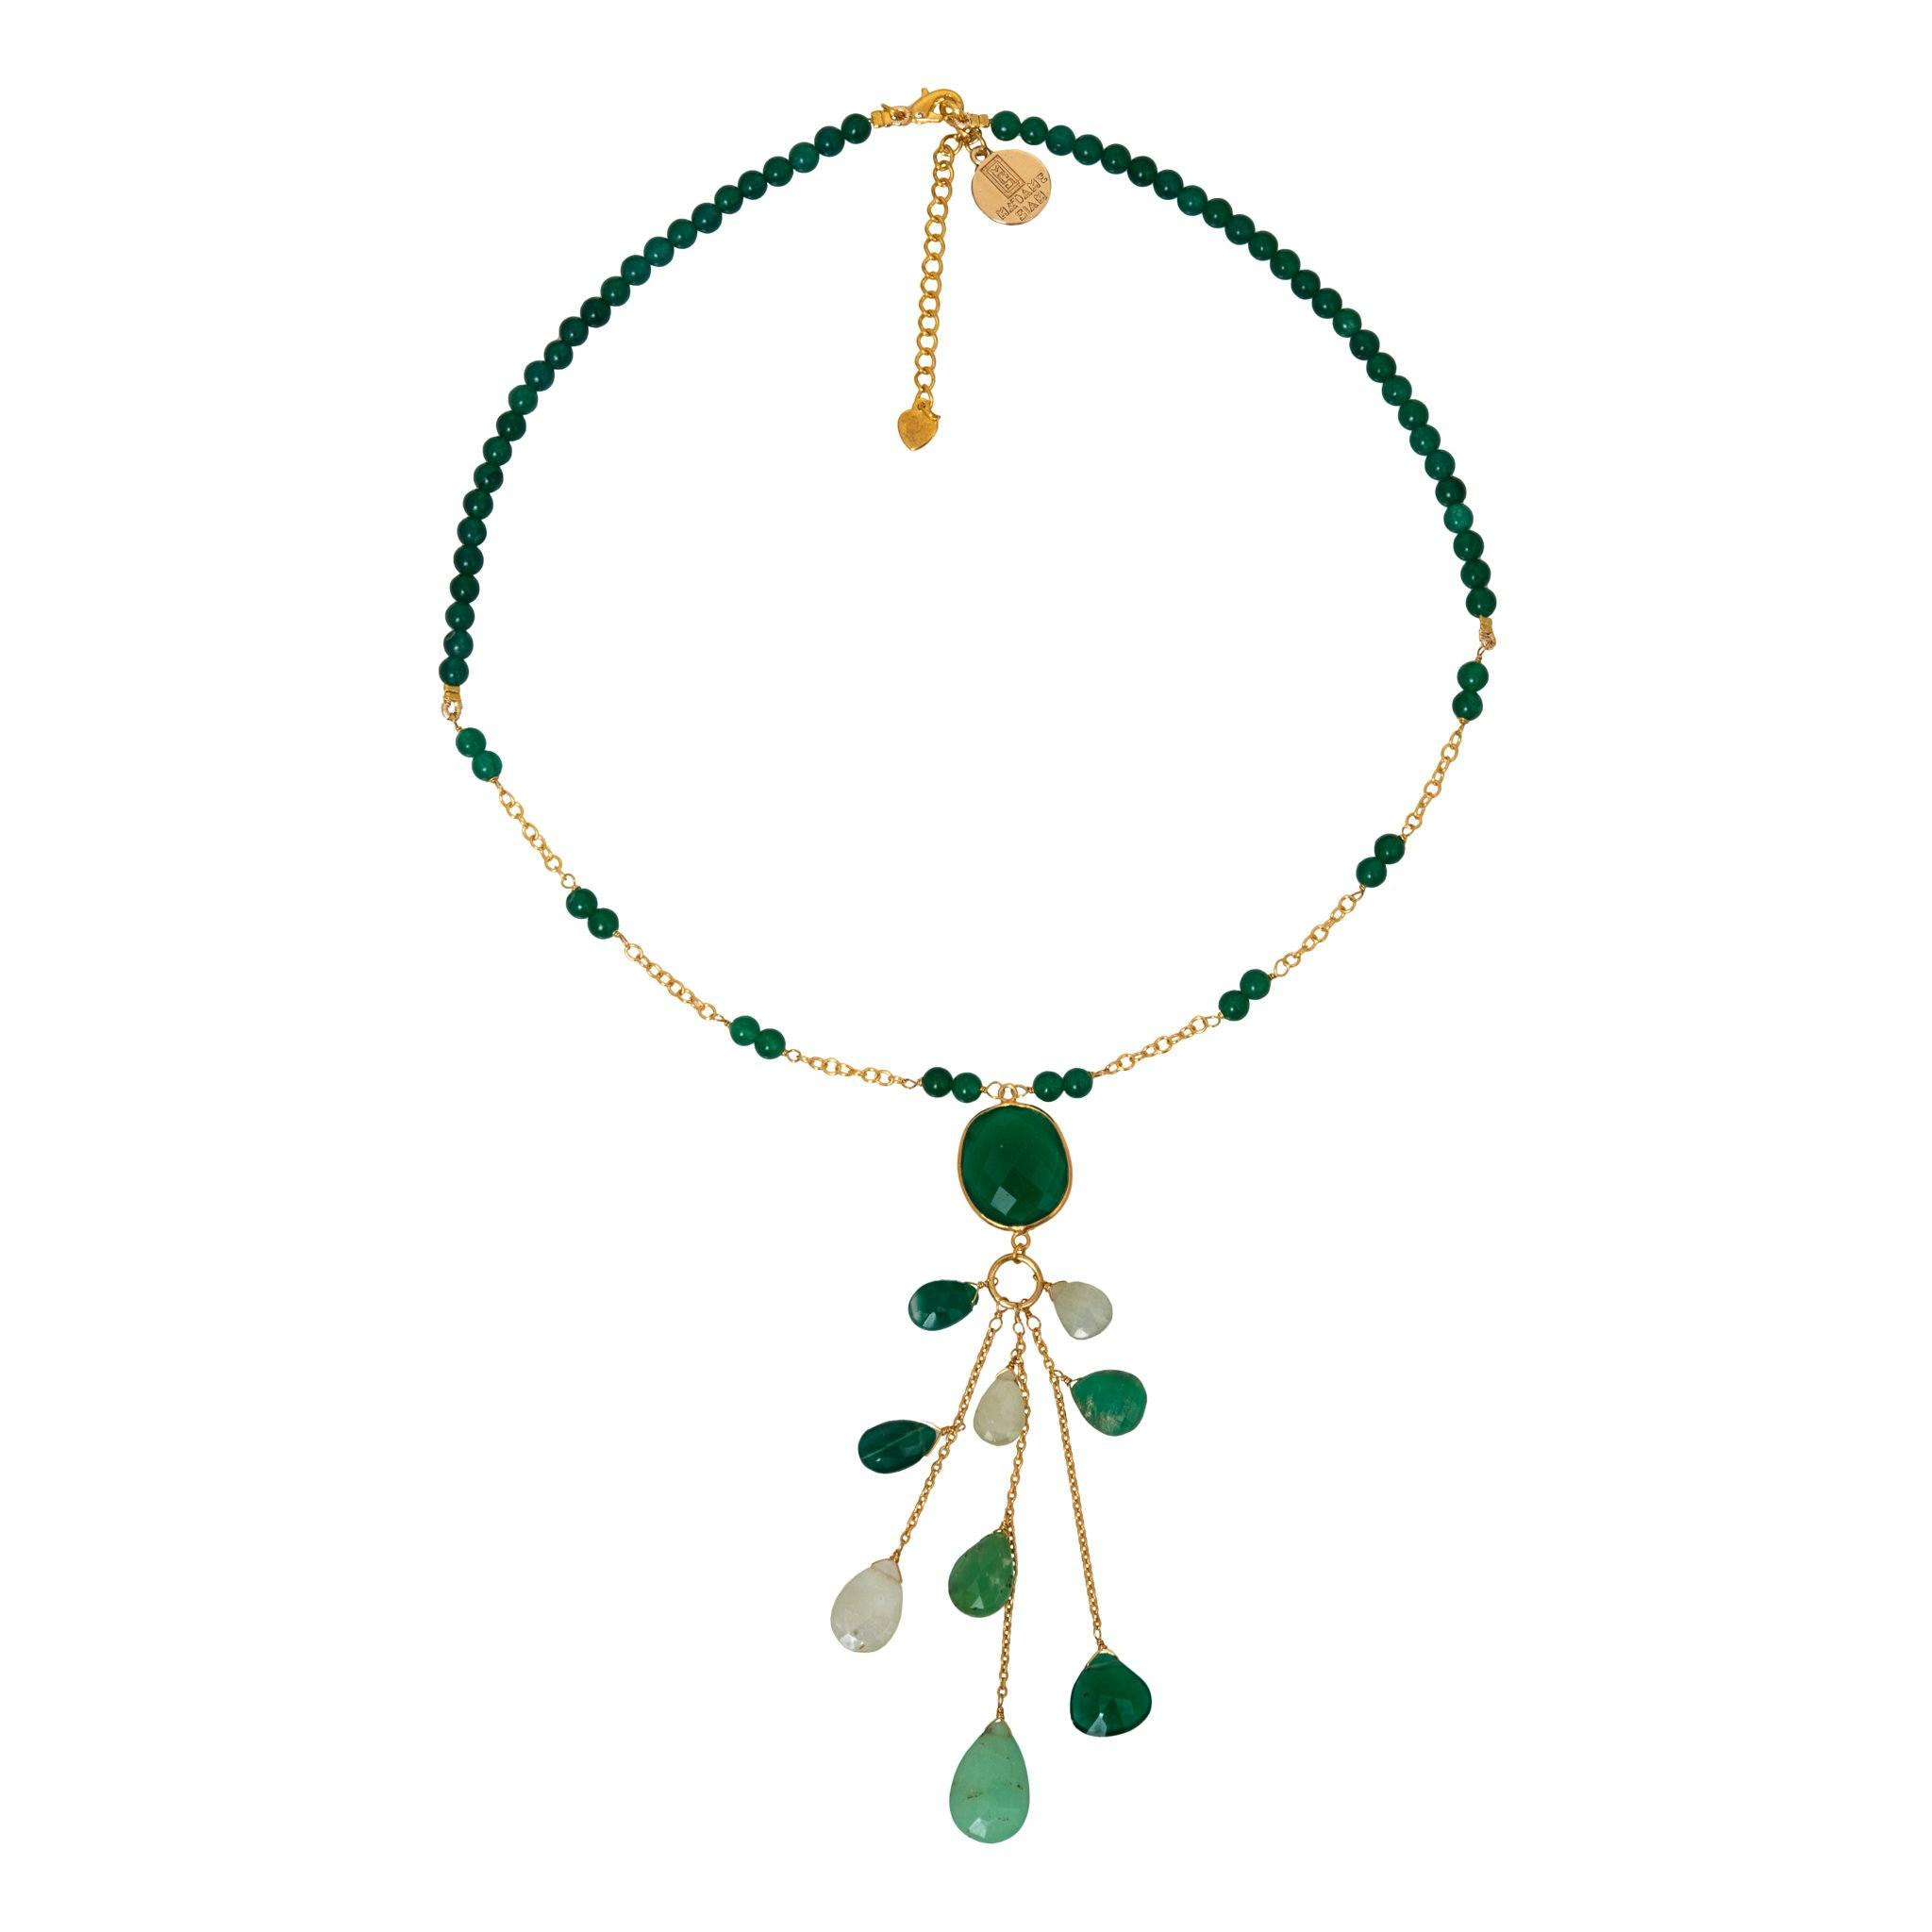 LUZ green onyx chocker with drops